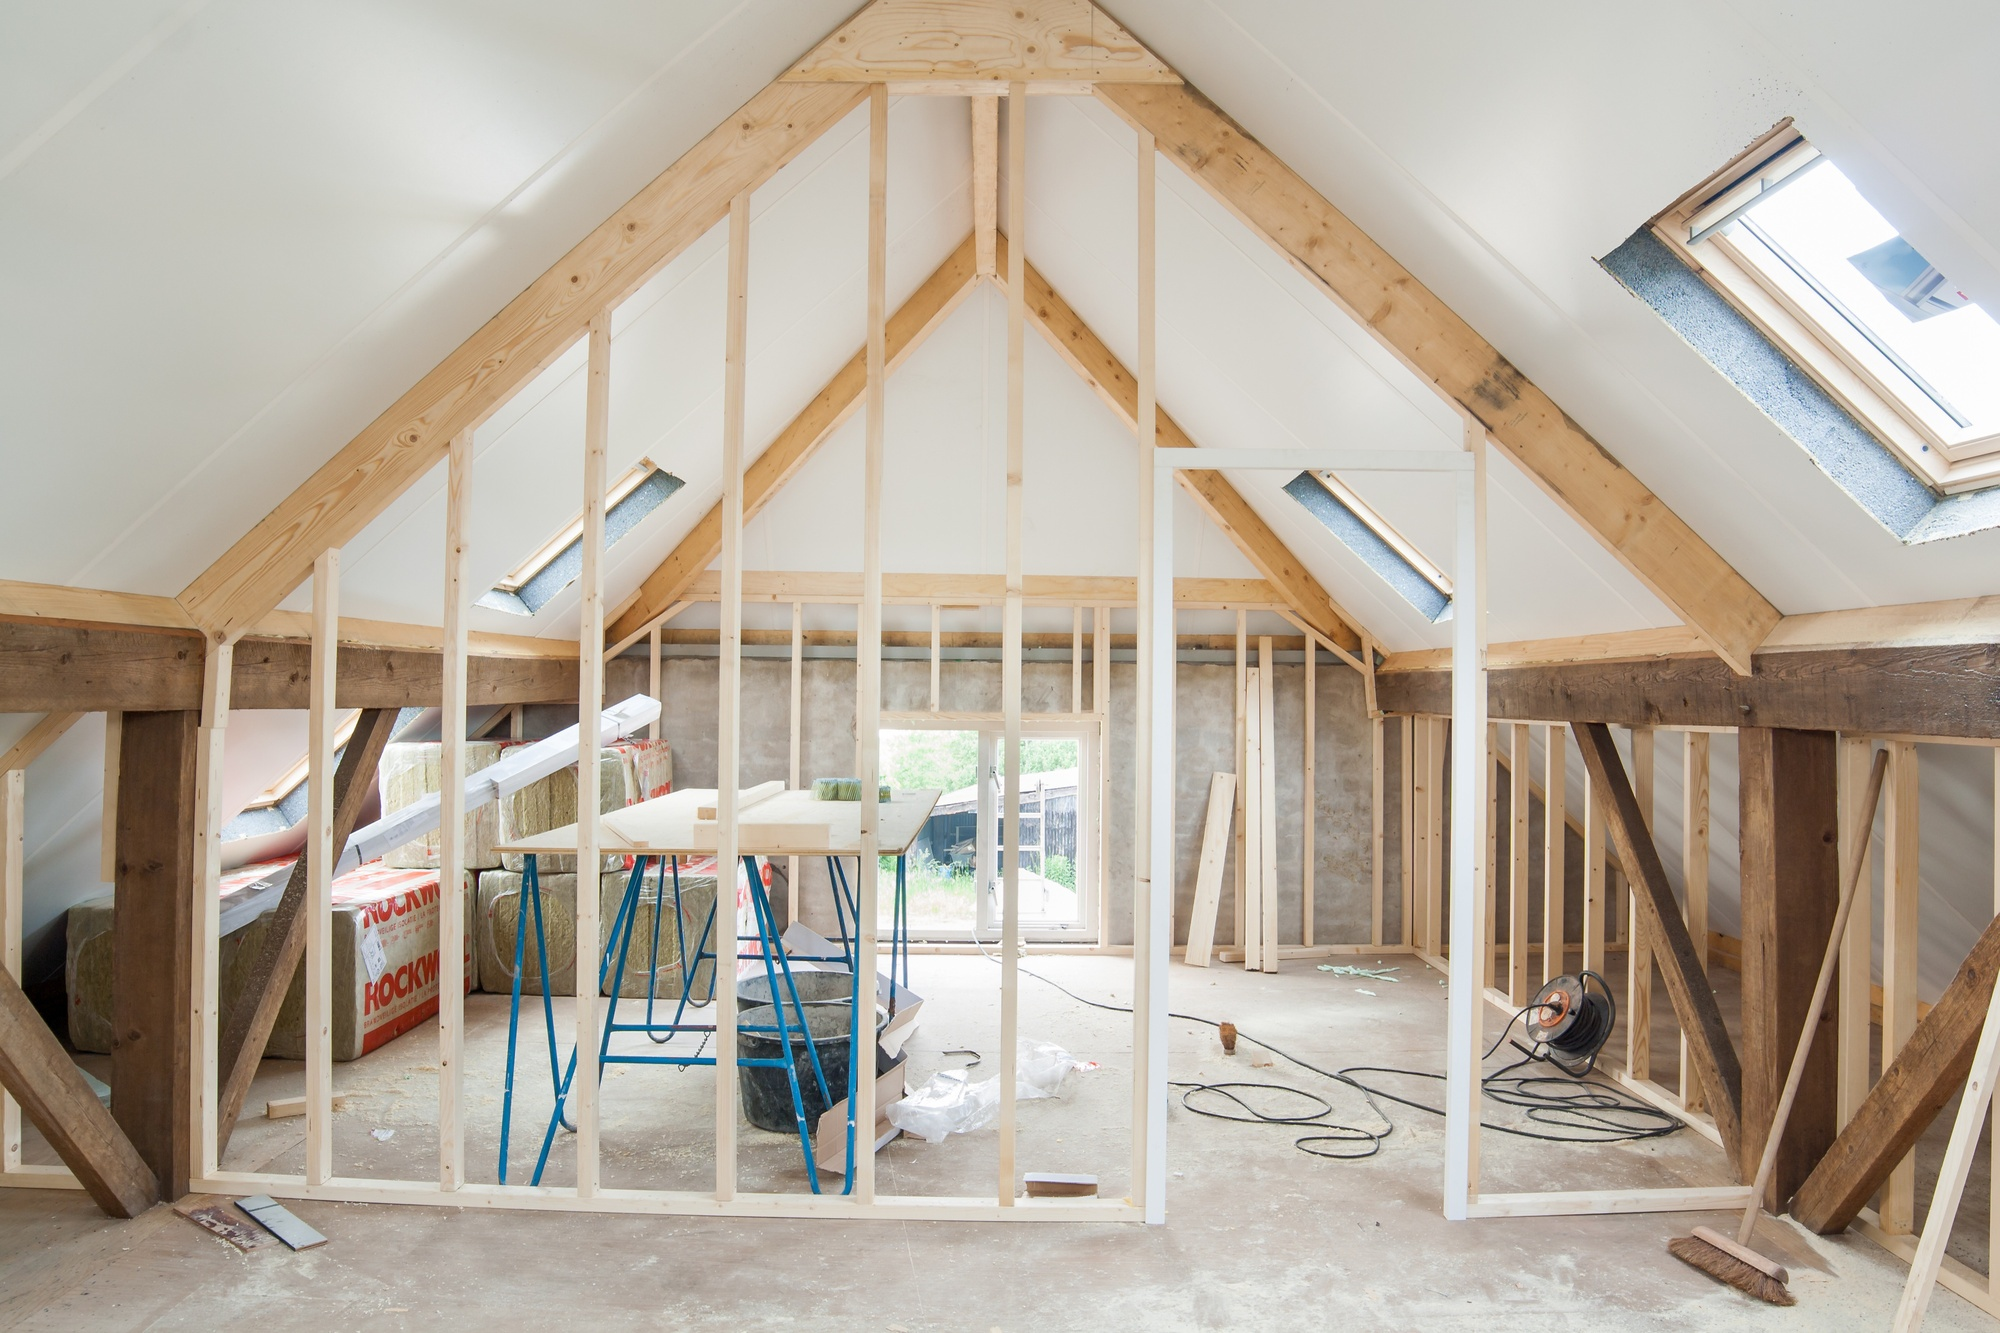 3 Important Things To Know About Loft Conversion Regulations